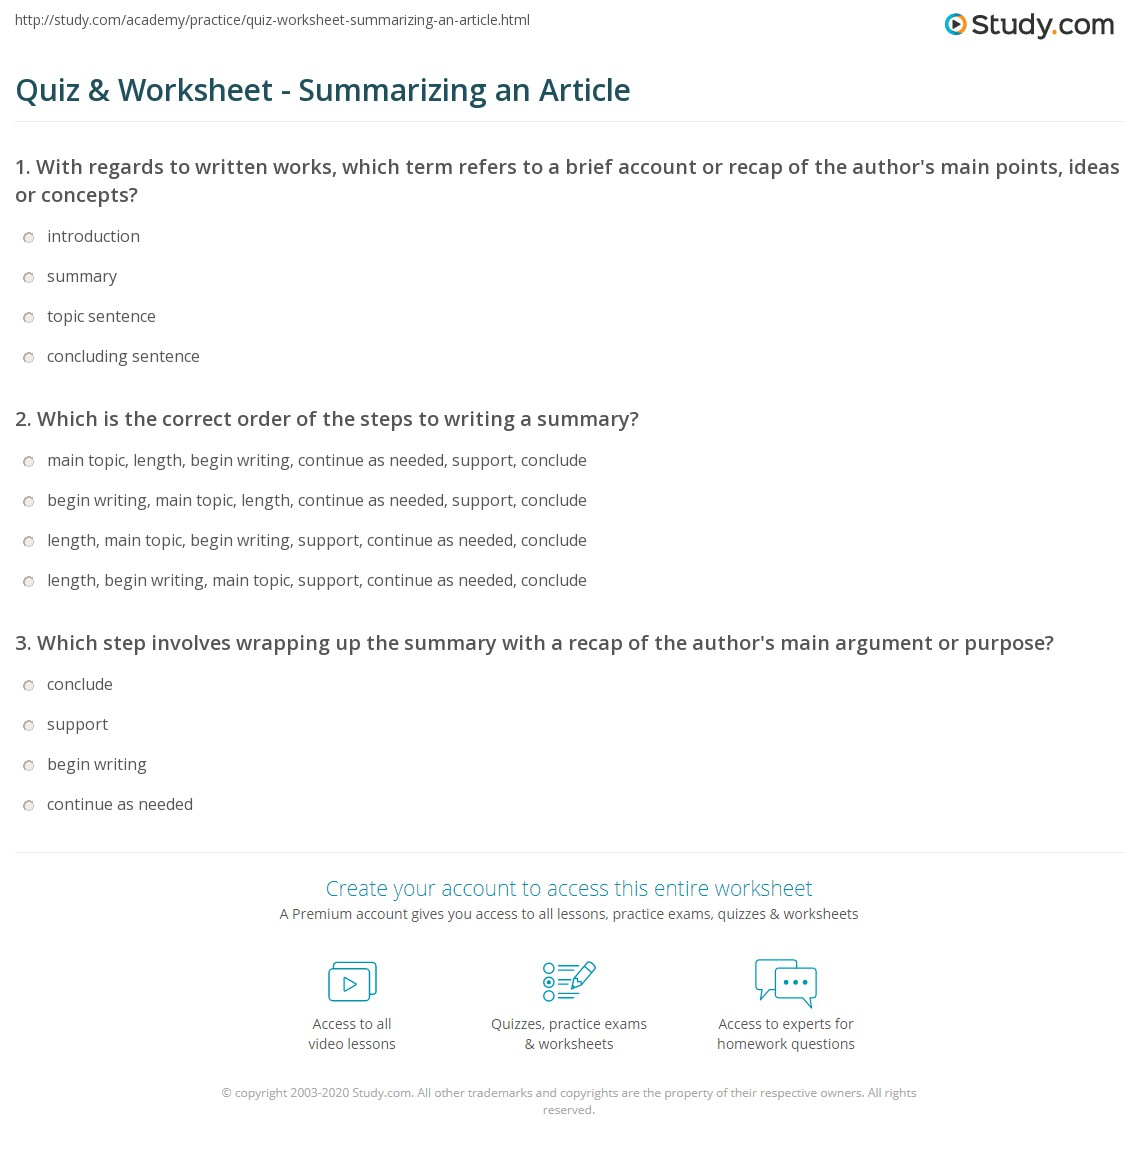 Worksheets Summarizing Worksheets quiz worksheet summarizing an article study com print how to write a summary of worksheet